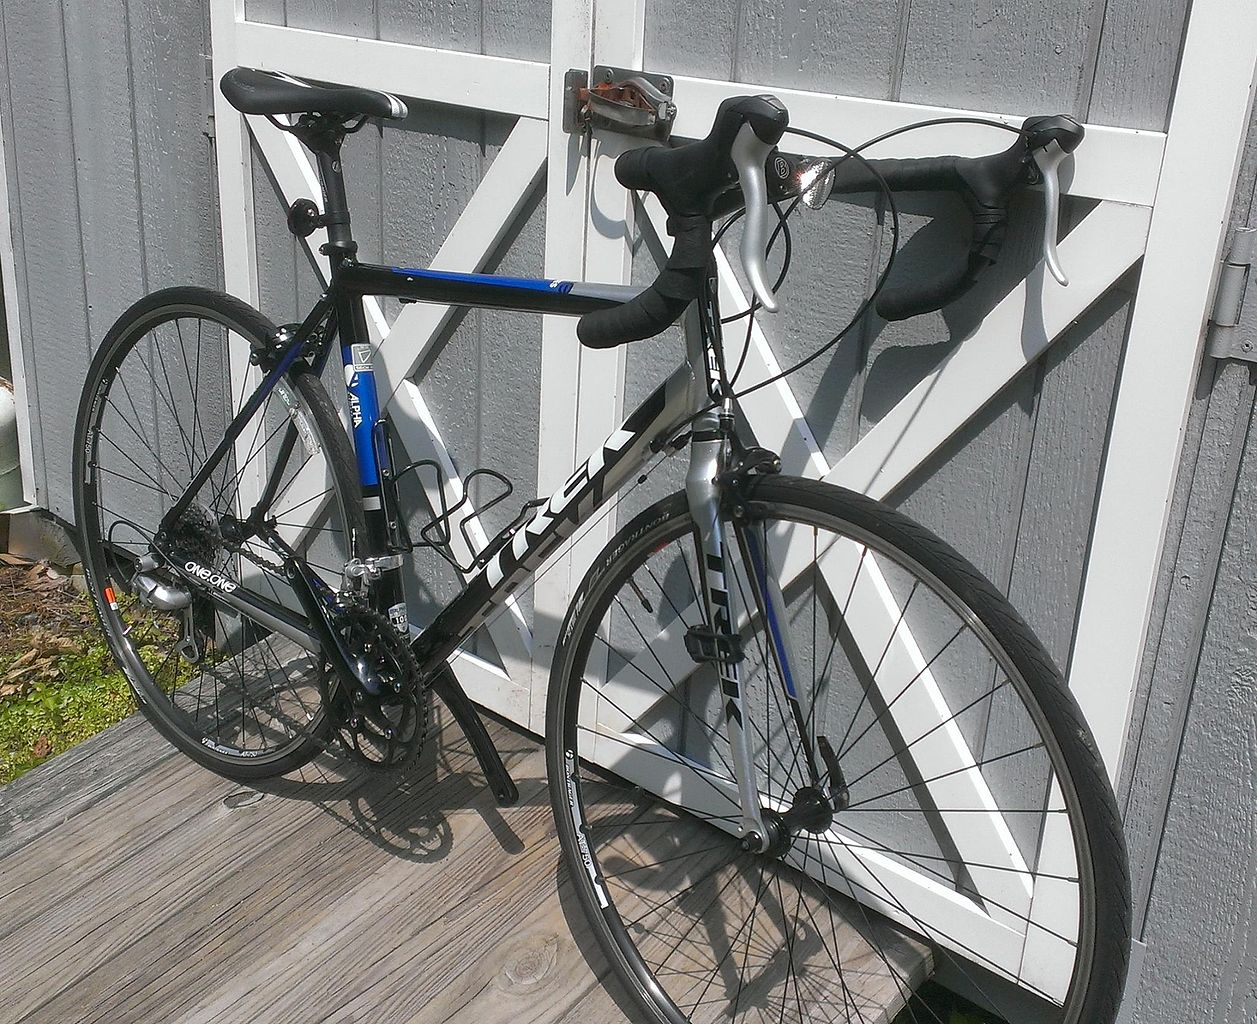 Bike Cannondale Centurion 1997 Value Trek Road Bike